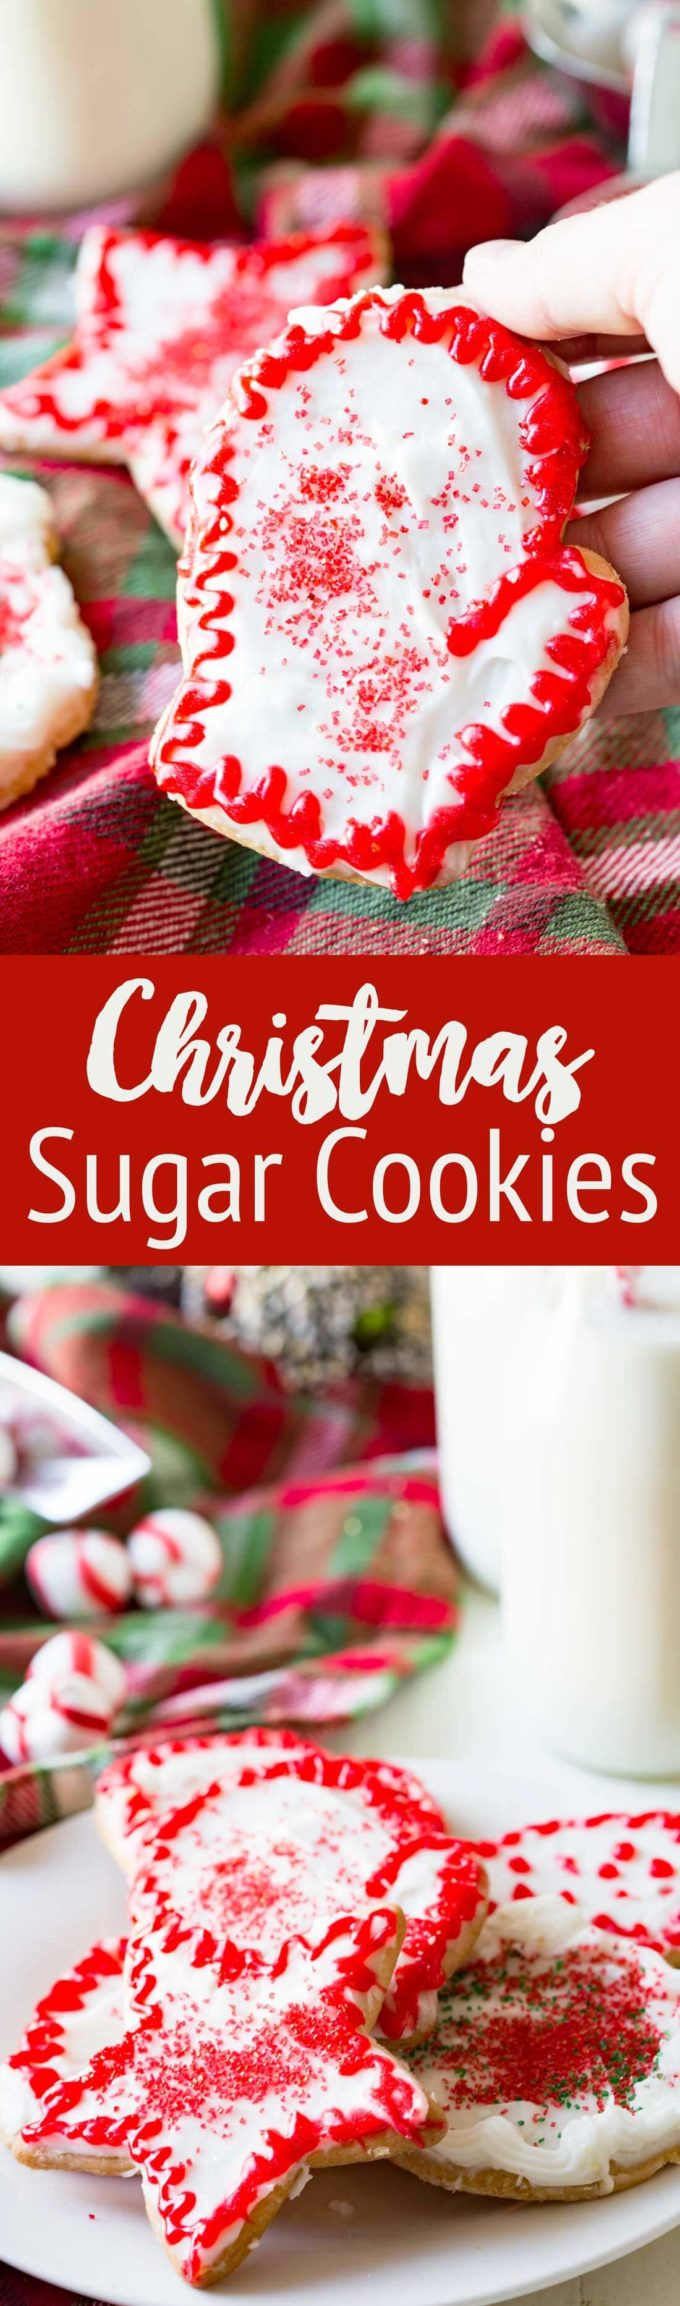 Christmas Sugar Cookies that are cut out cookies, topped with frosting, and excellent for decorating and eating.